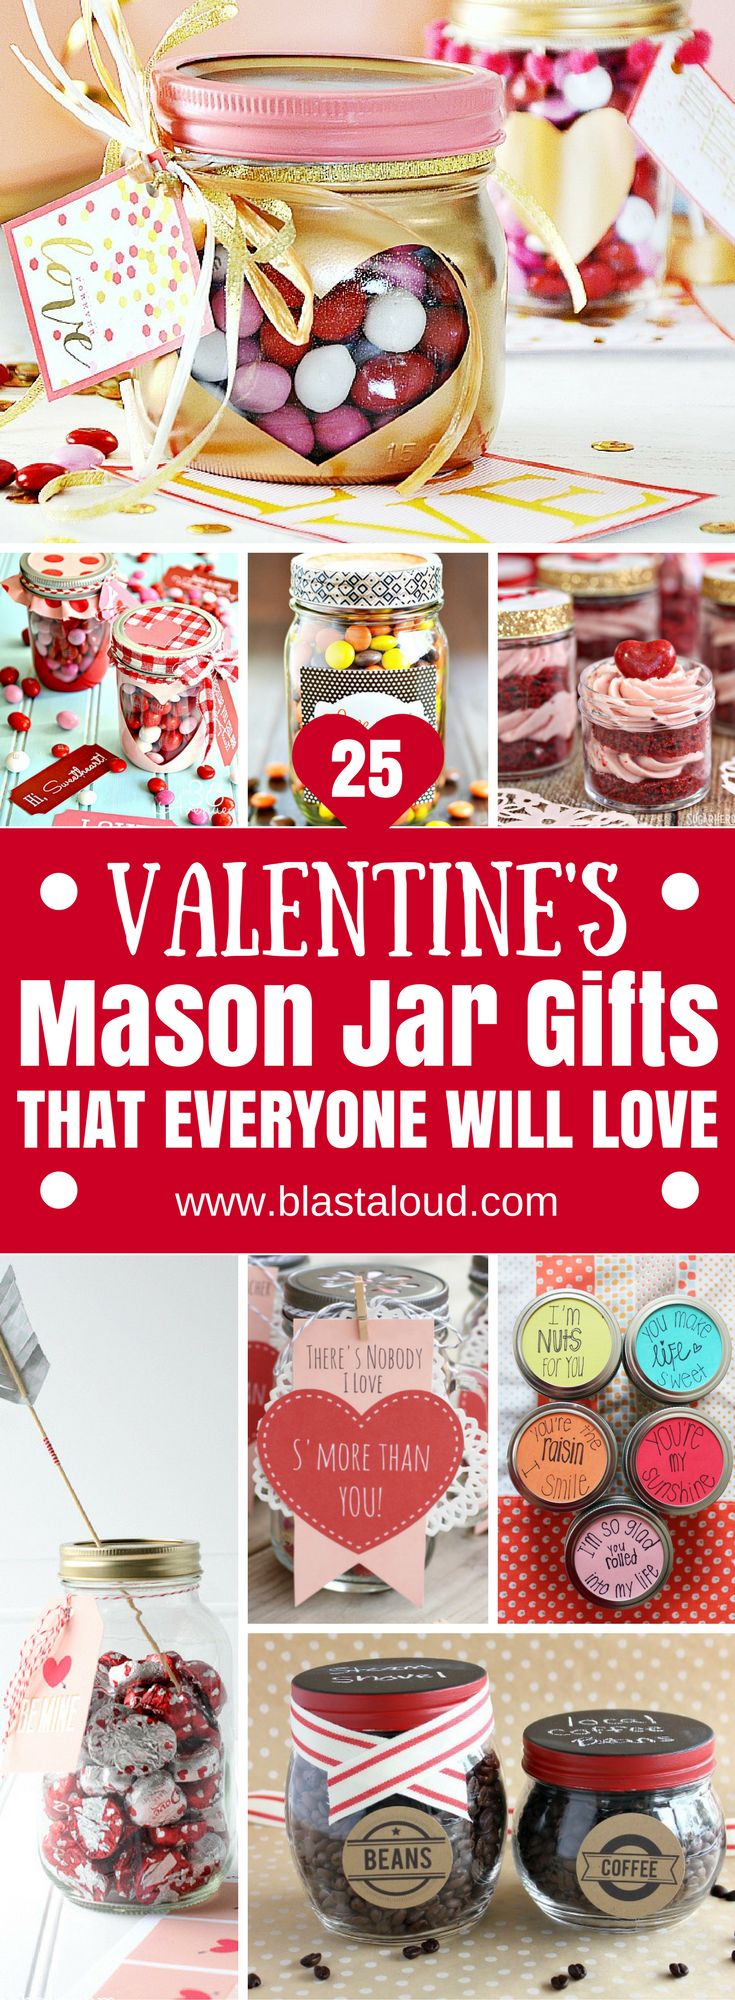 Wow absolutely love these valentines mason jar gifts! Definitely pinning for later. Must try on valentines day for valentines gifts! #valentines #valentinesday #masonjars #valentinesgifts #valentinesideas